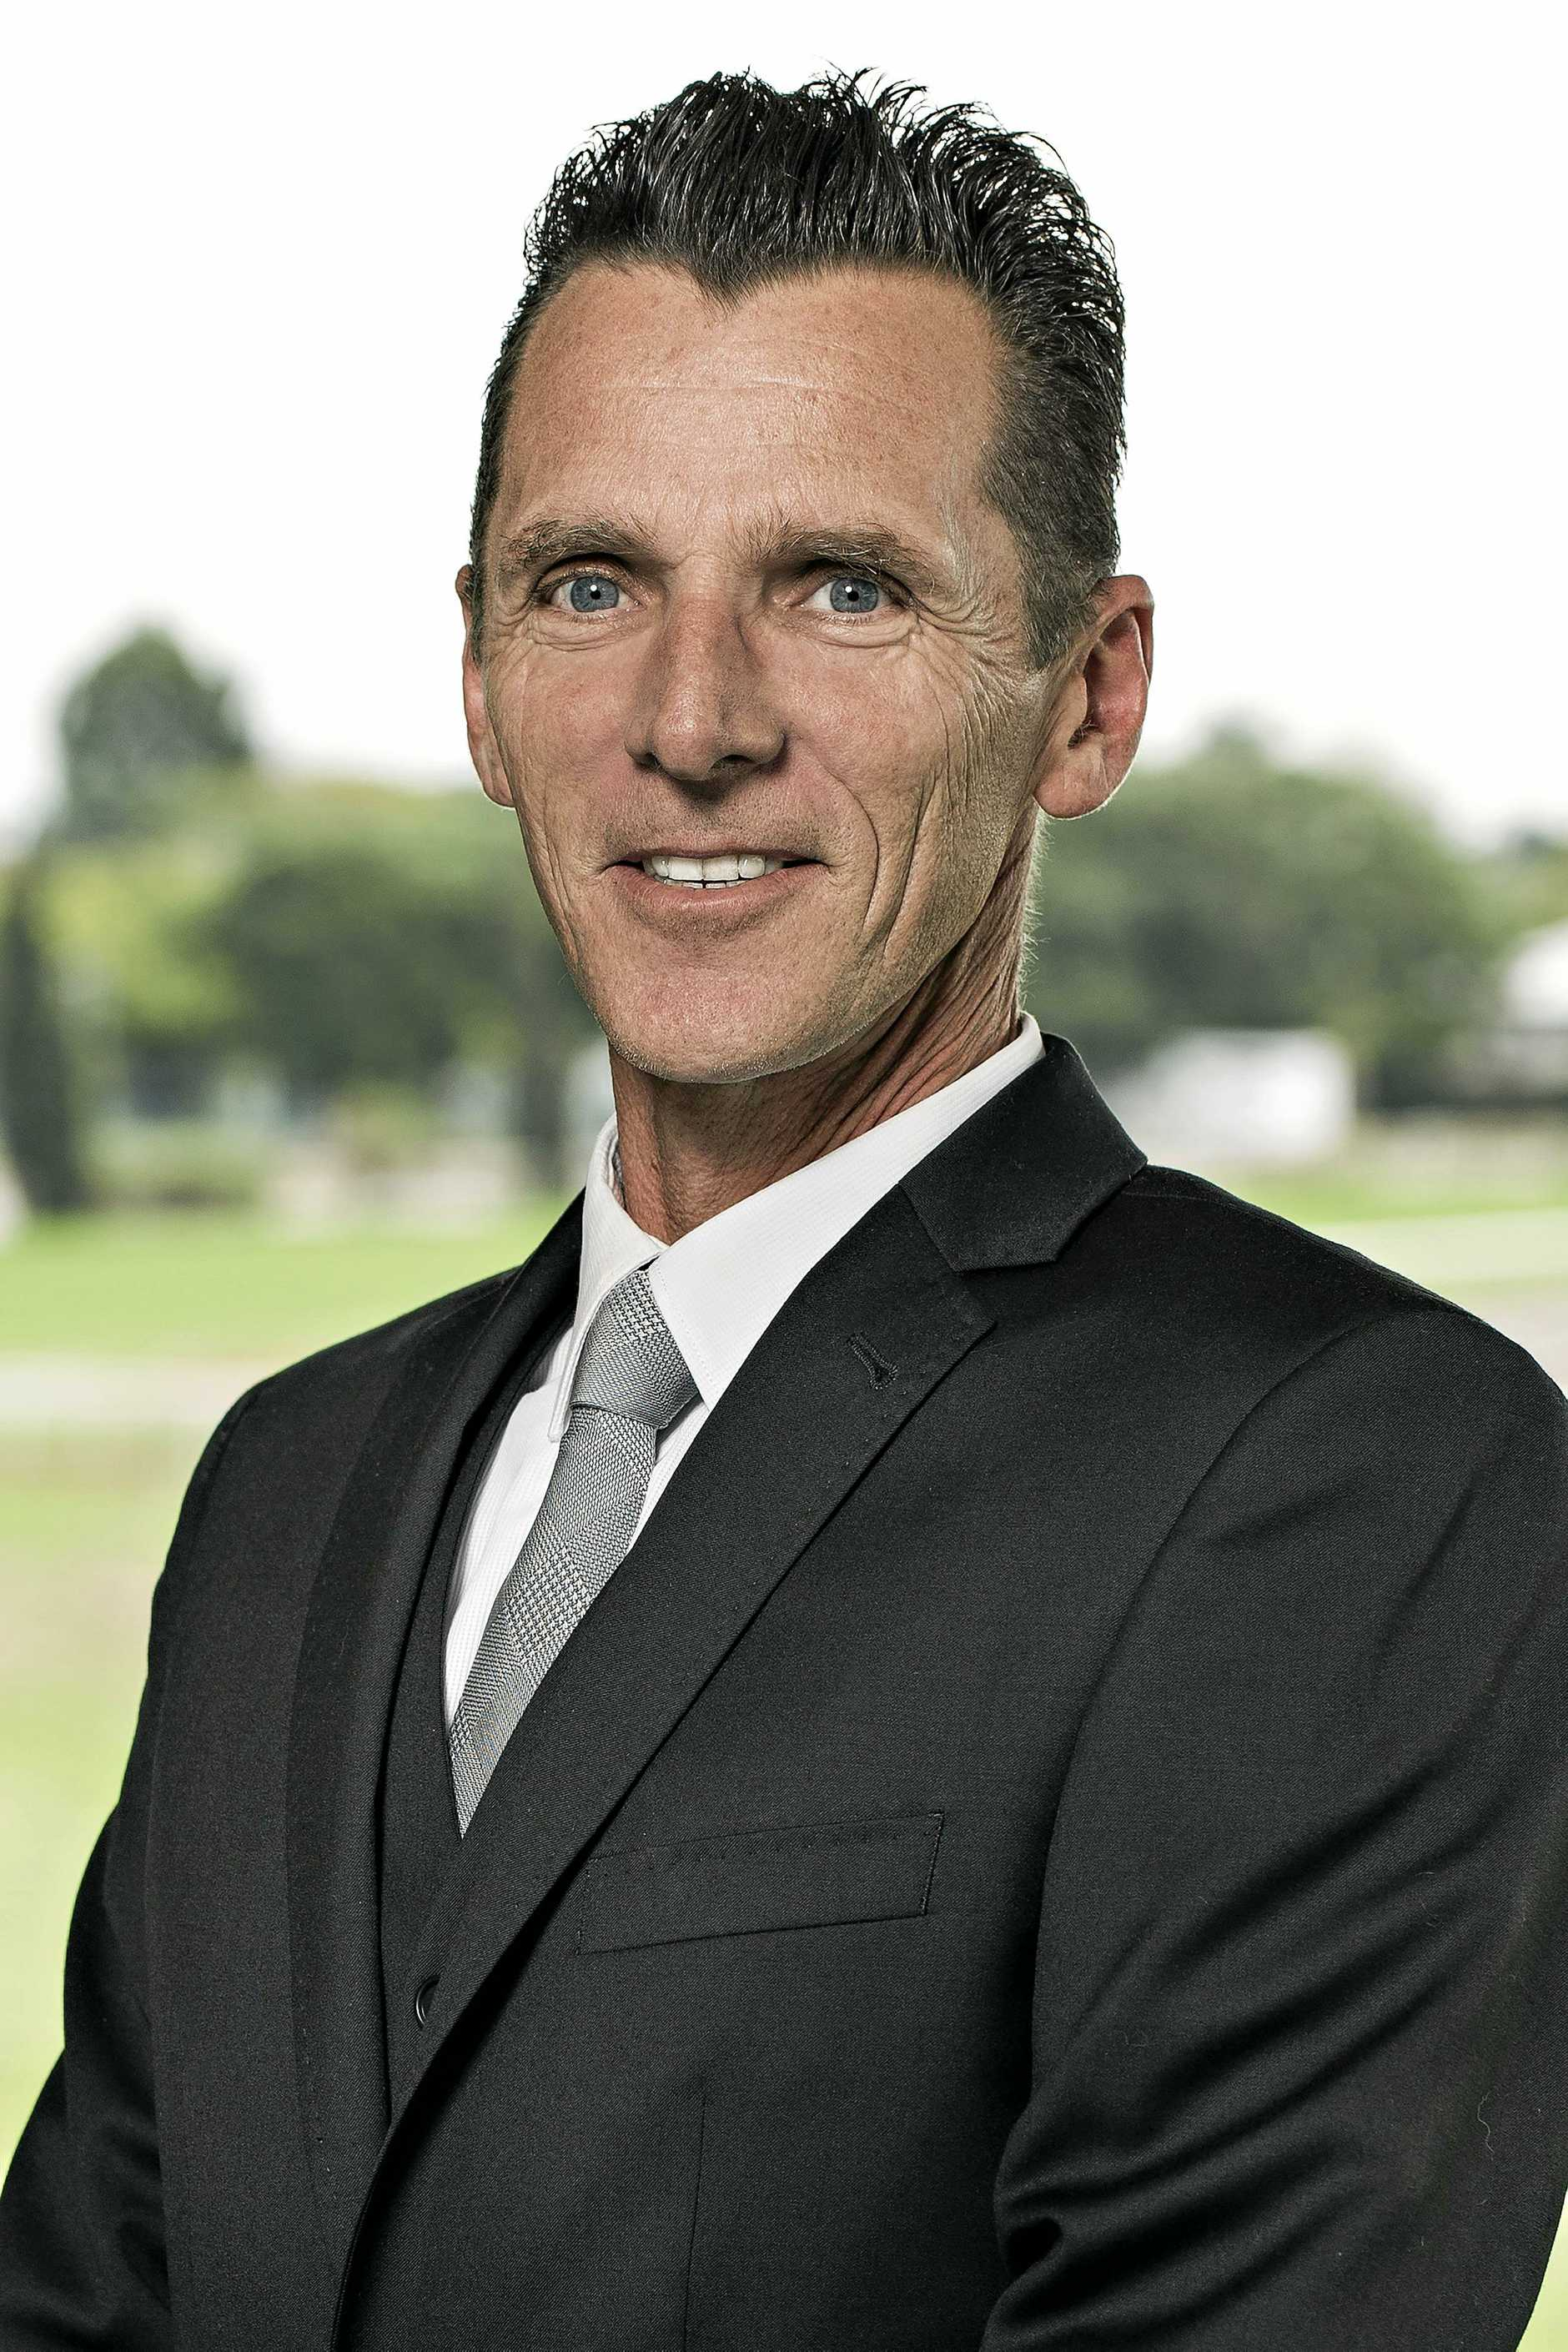 Dave Whimpey has been announced at the new CEO of Surf Life Saving Queensland.